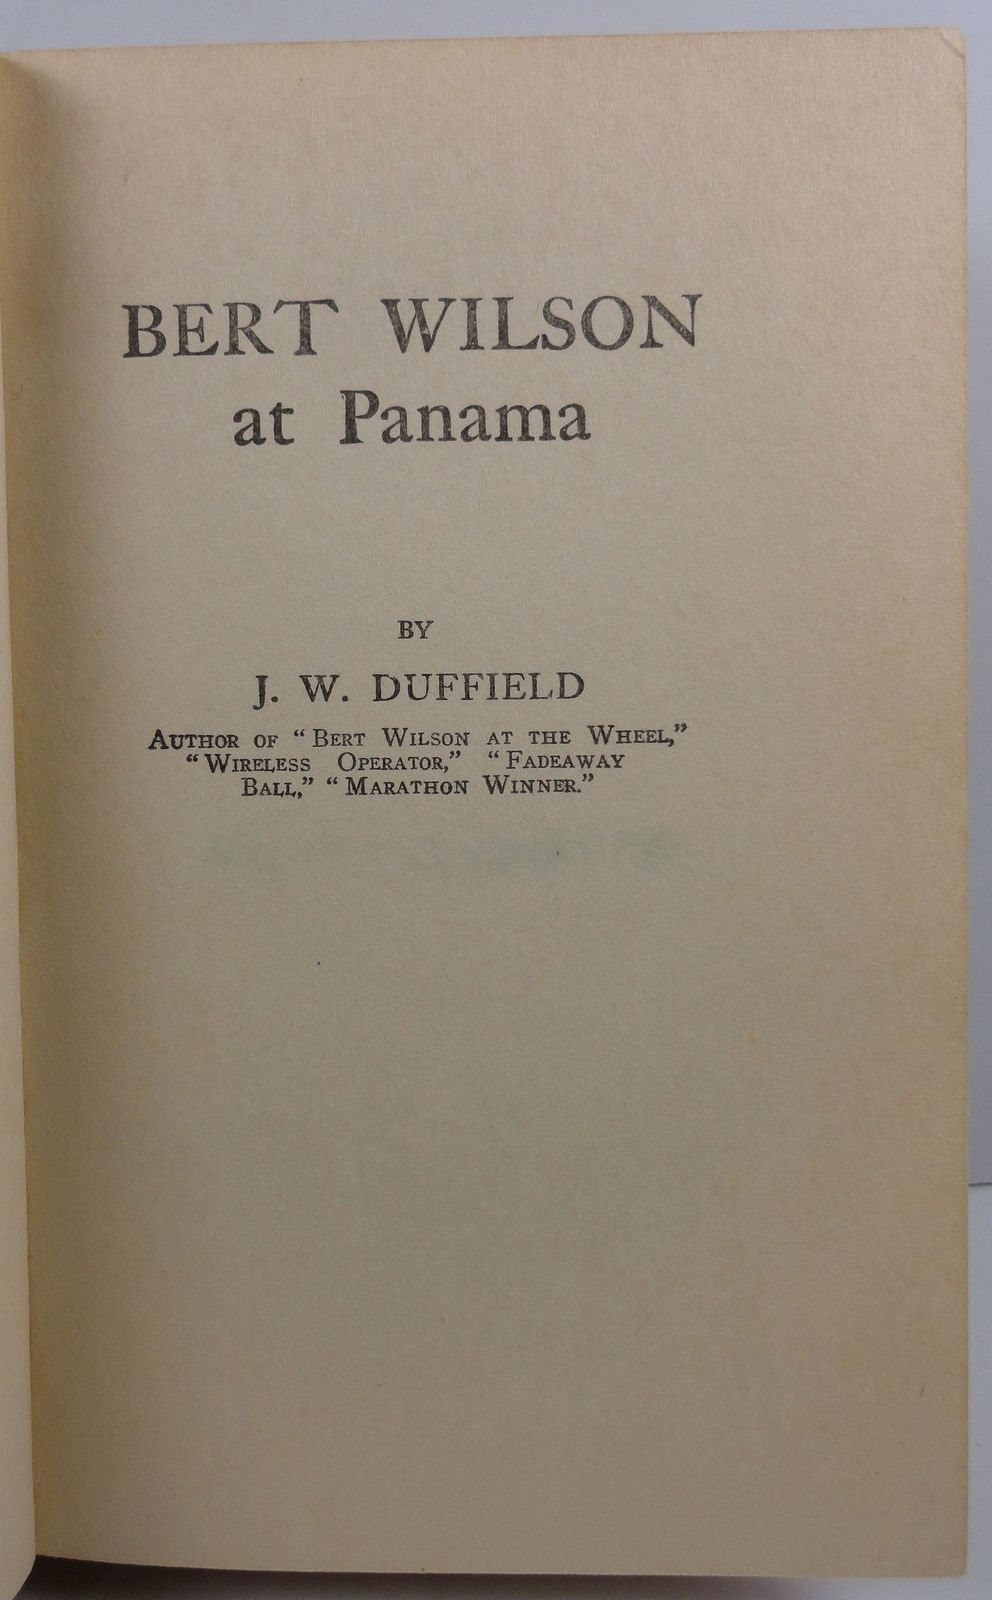 Bert Wilson at Panama by J. W. Duffield Western Printing